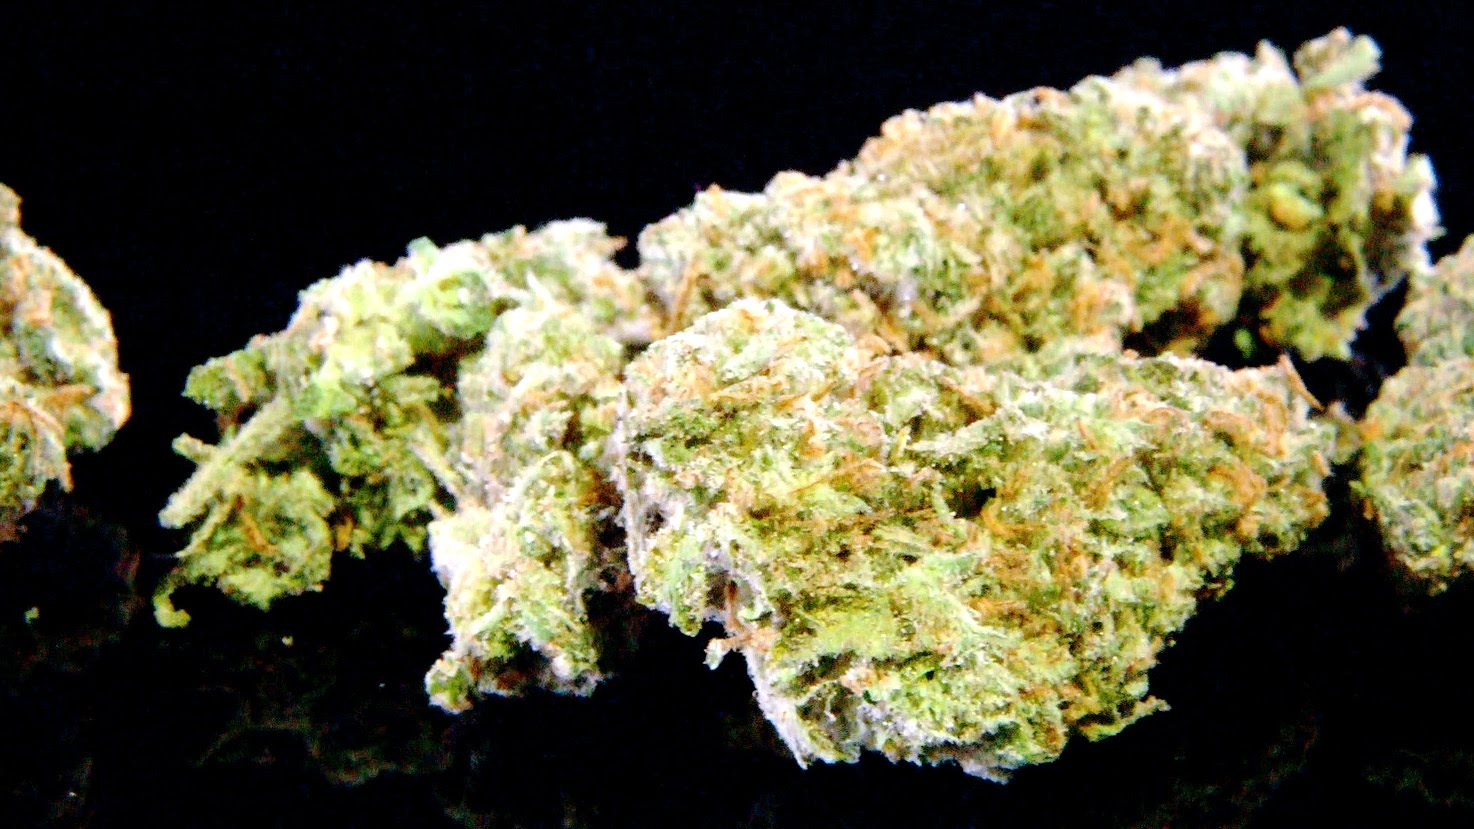 Cannabis Up Close #9: XJ-13 (Hybrid) from THC Designs Strain Review